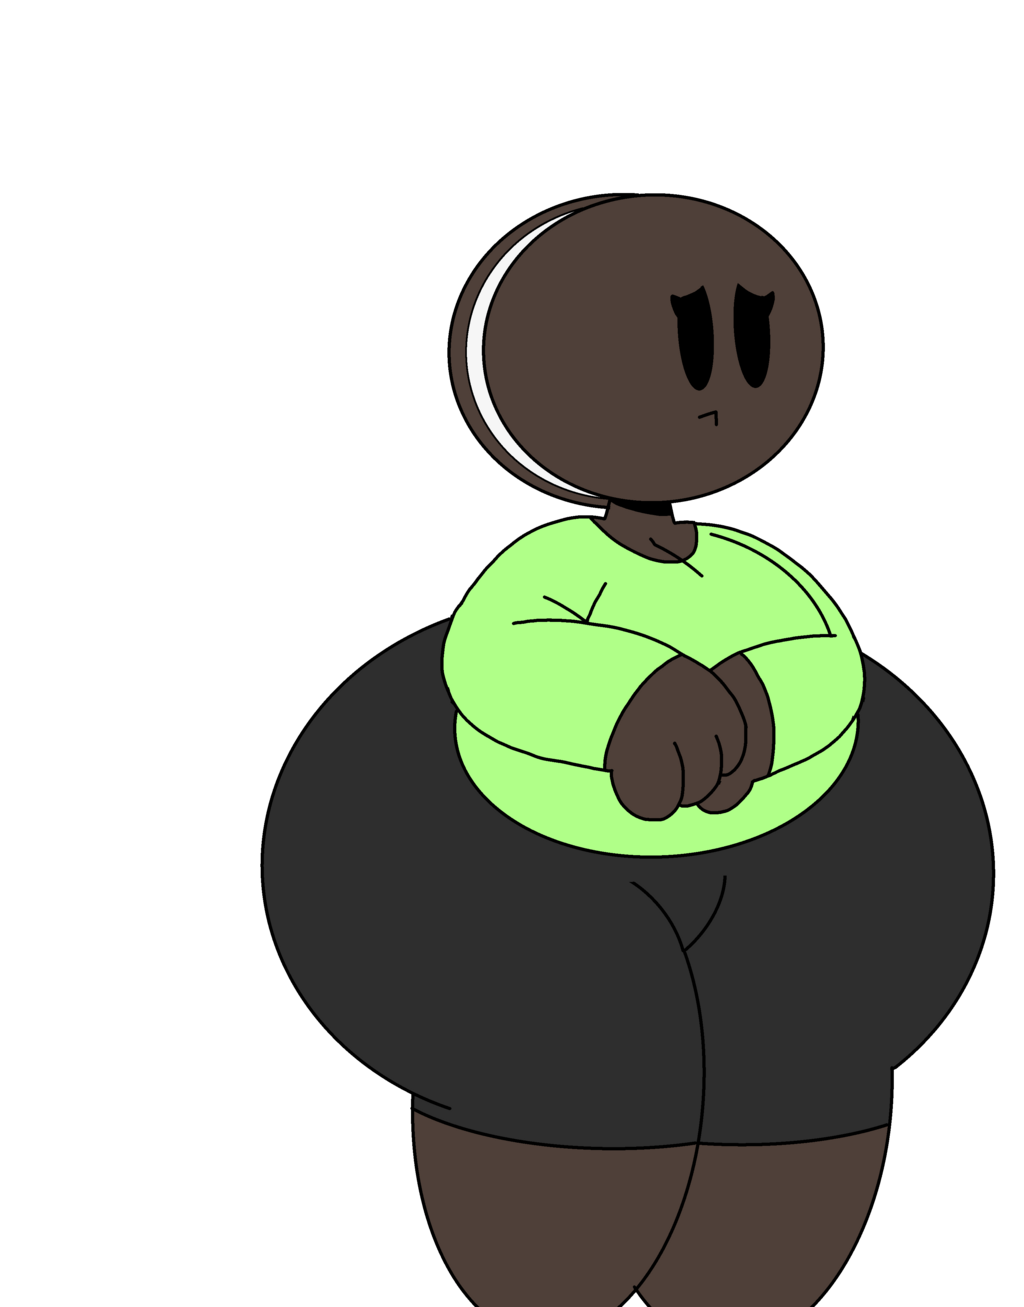 Most recent image: Kris the thicc Oreo gal~